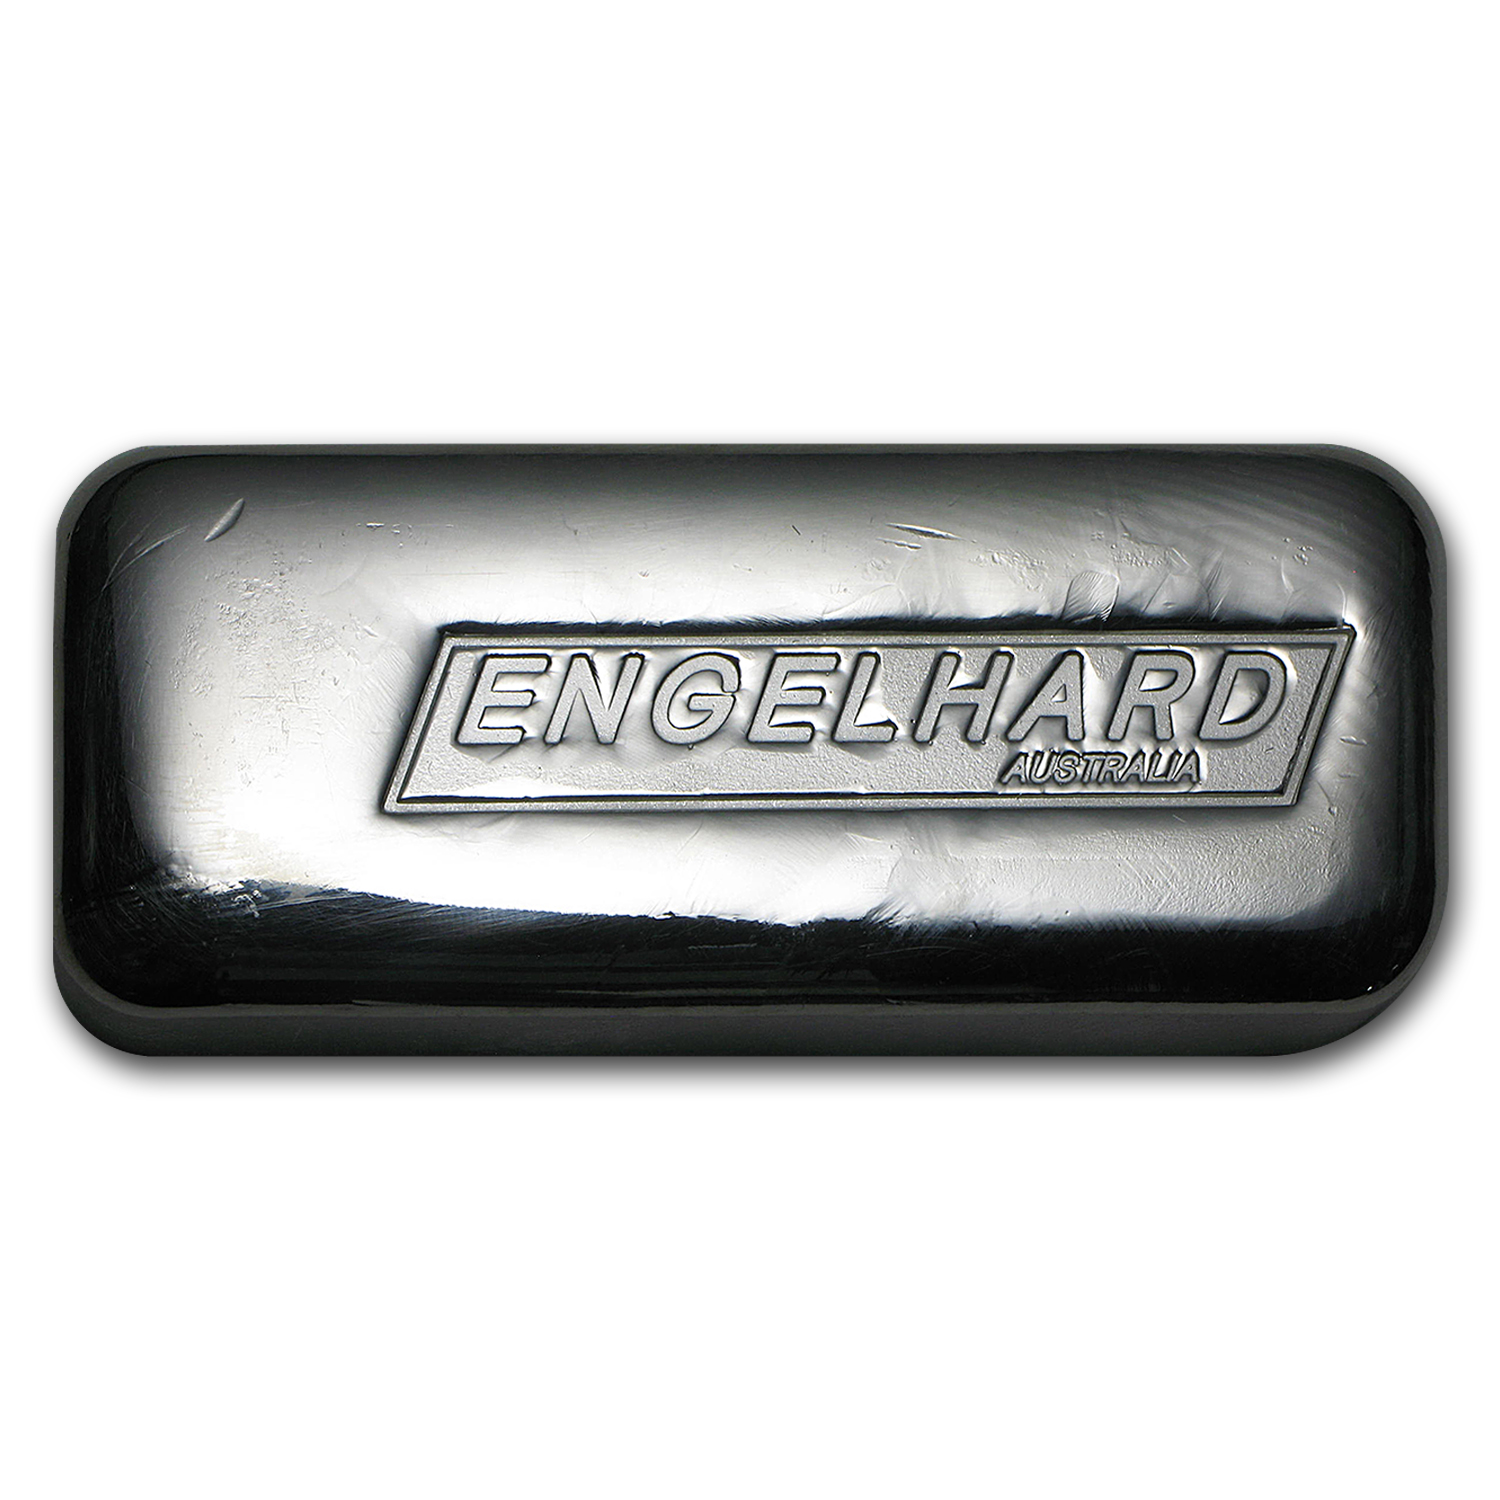 10 oz Silver Bar - Engelhard-Australia (New, Cast)